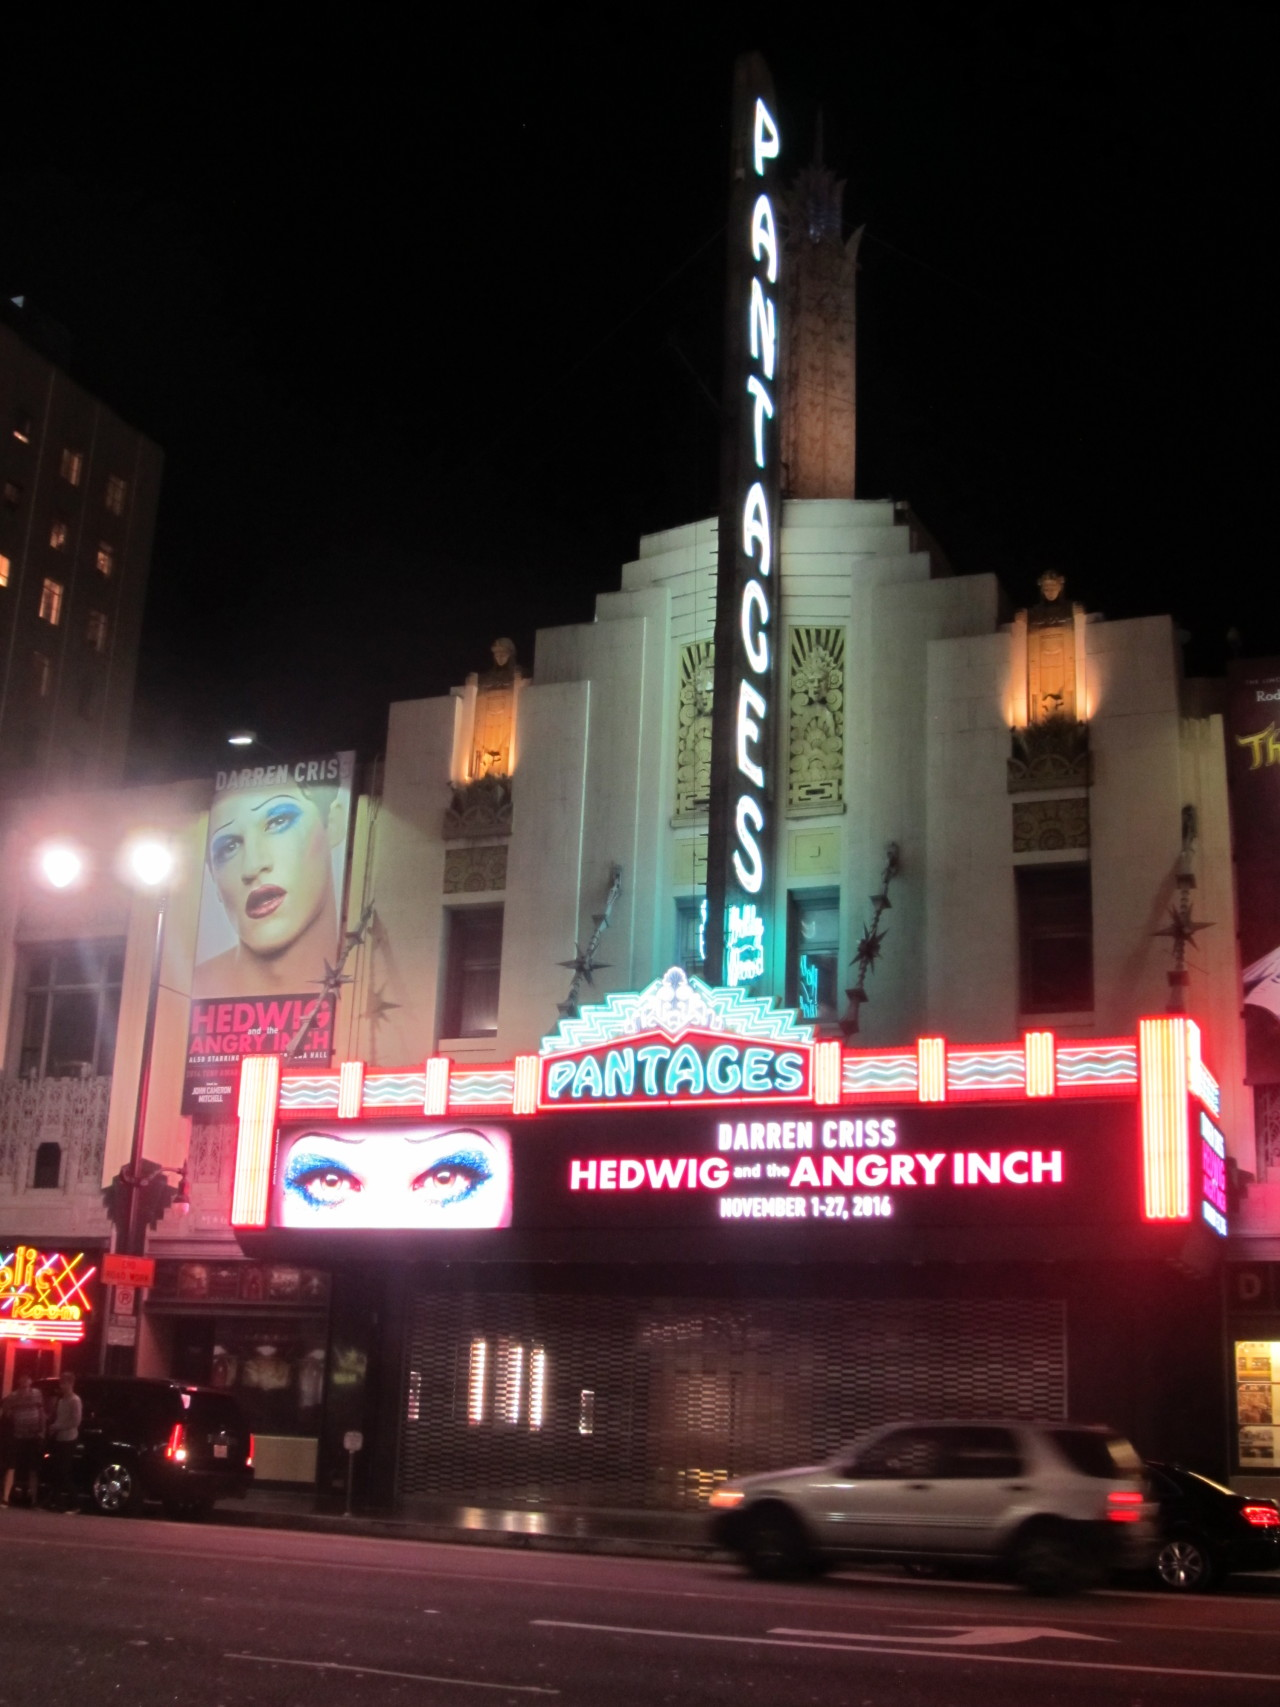 lgbtq - The Hedwig and the Angry Inch Tour in SF and L.A. (Promotion, Pre-Performances & Miscellaneous Information) - Page 2 Tumblr_obs55unIDR1qmj3nao1_1280